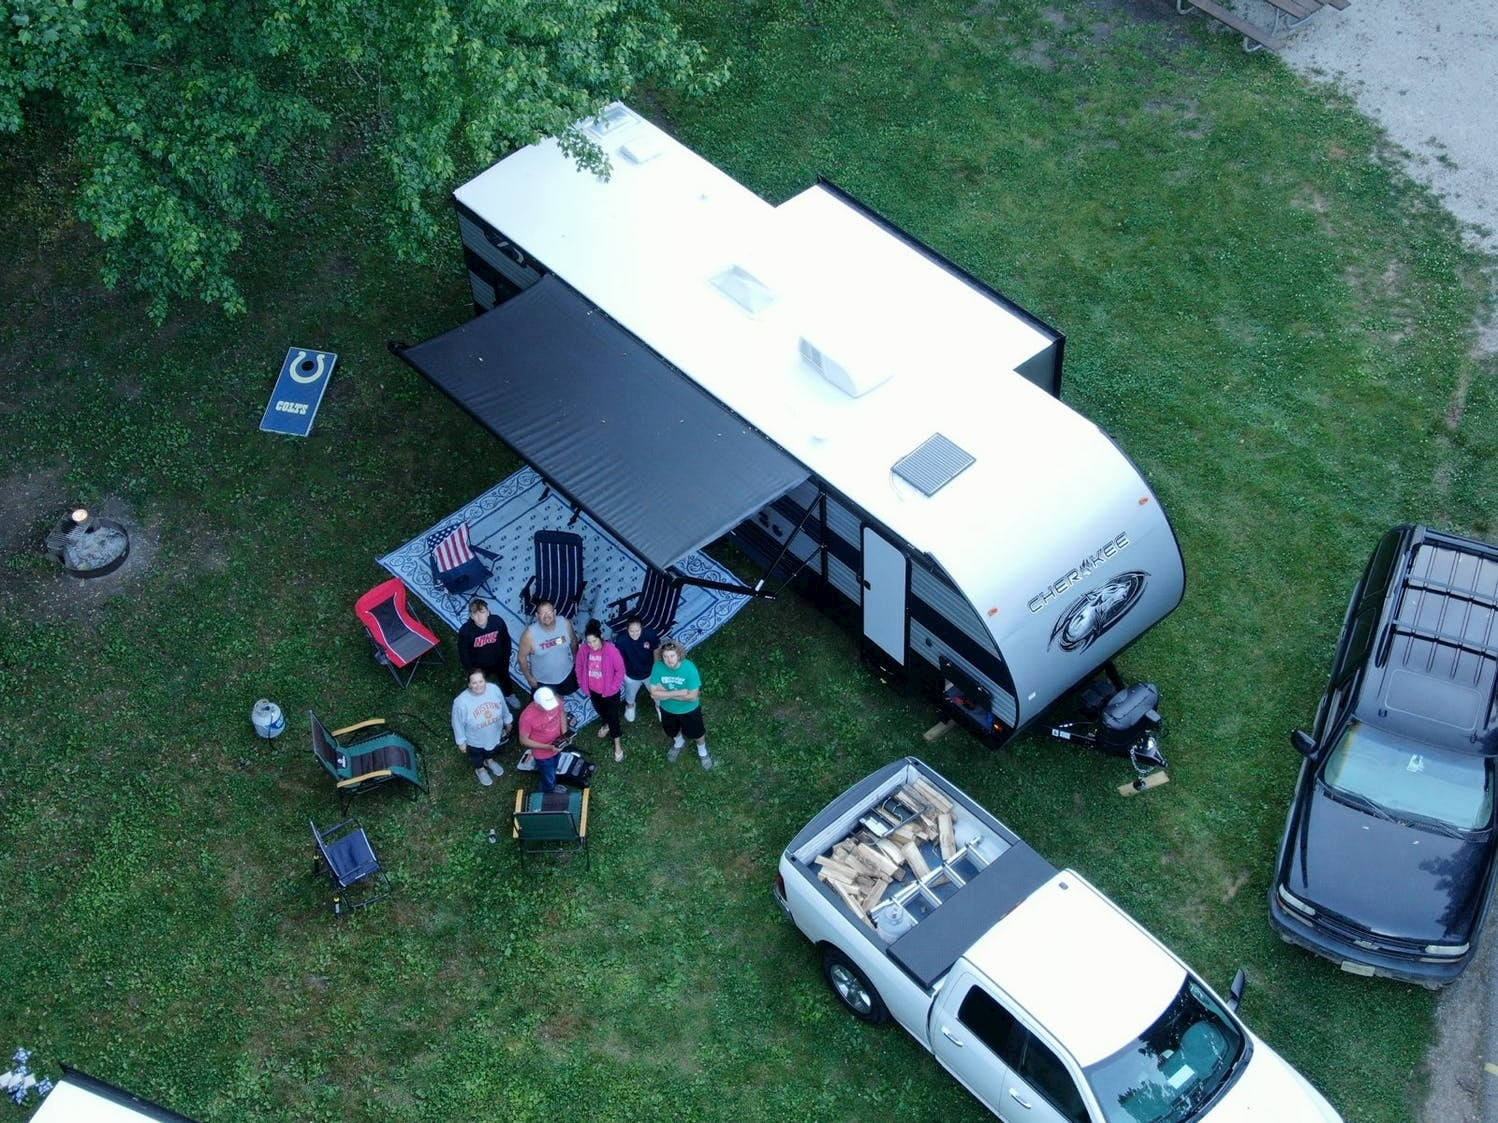 Aerial image of campsite with RV and pickup truck filled with wood,